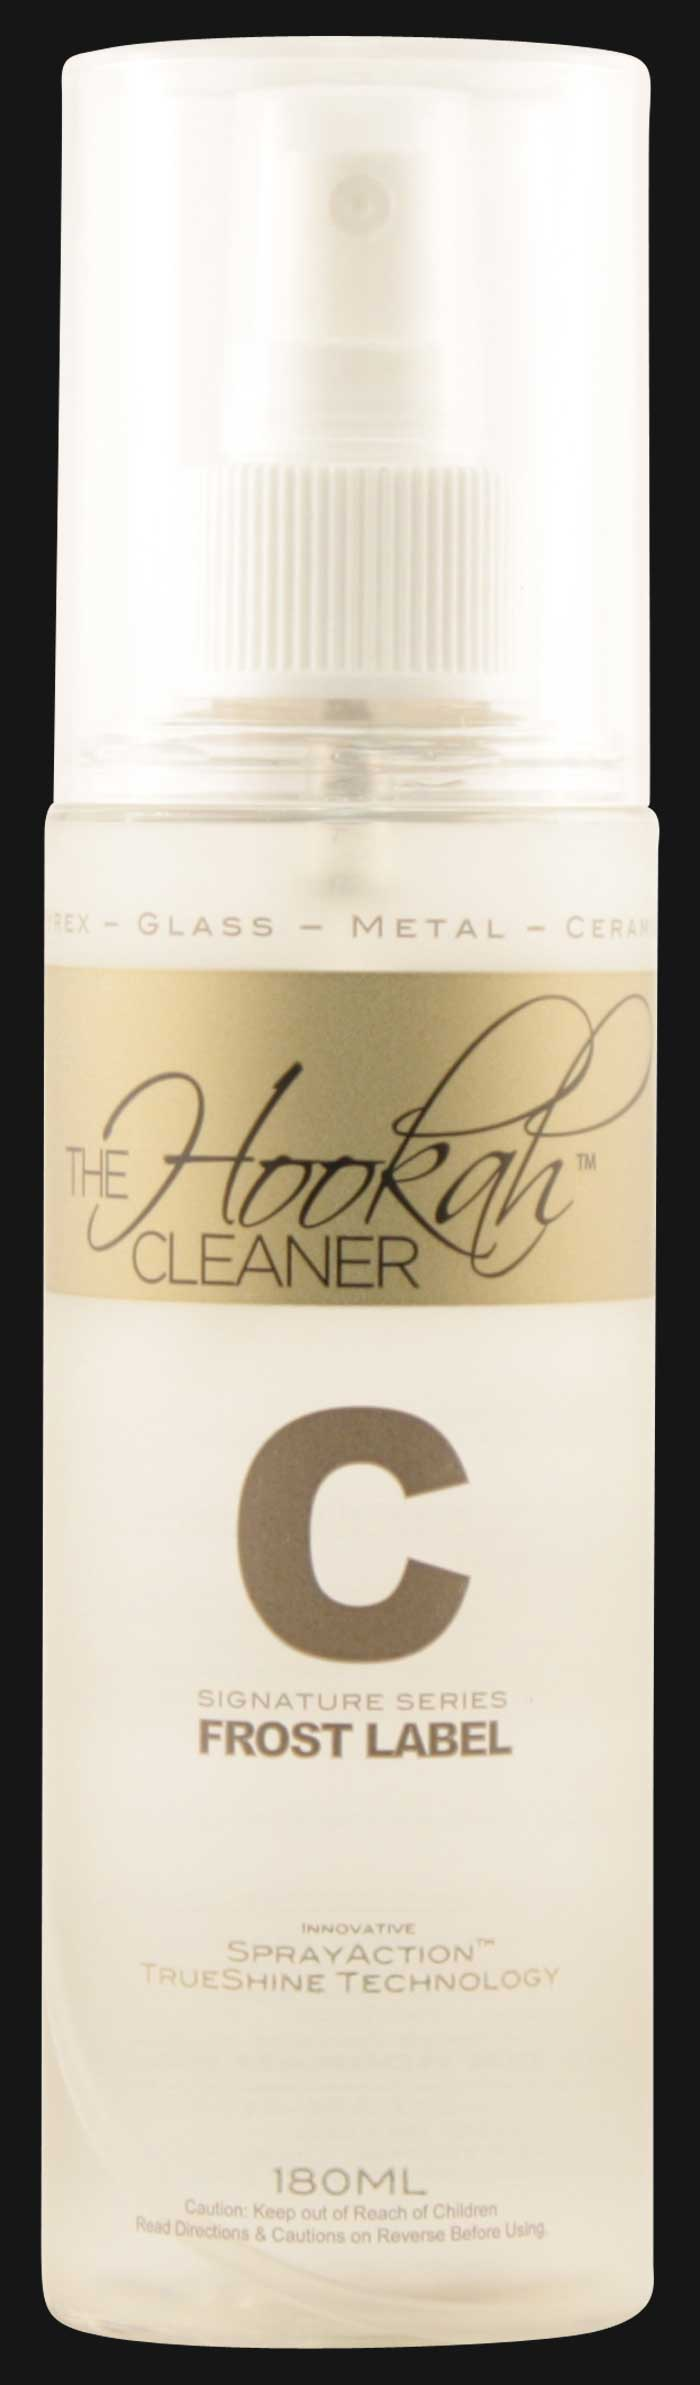 The Hookah Cleaner Spray Frost Label C